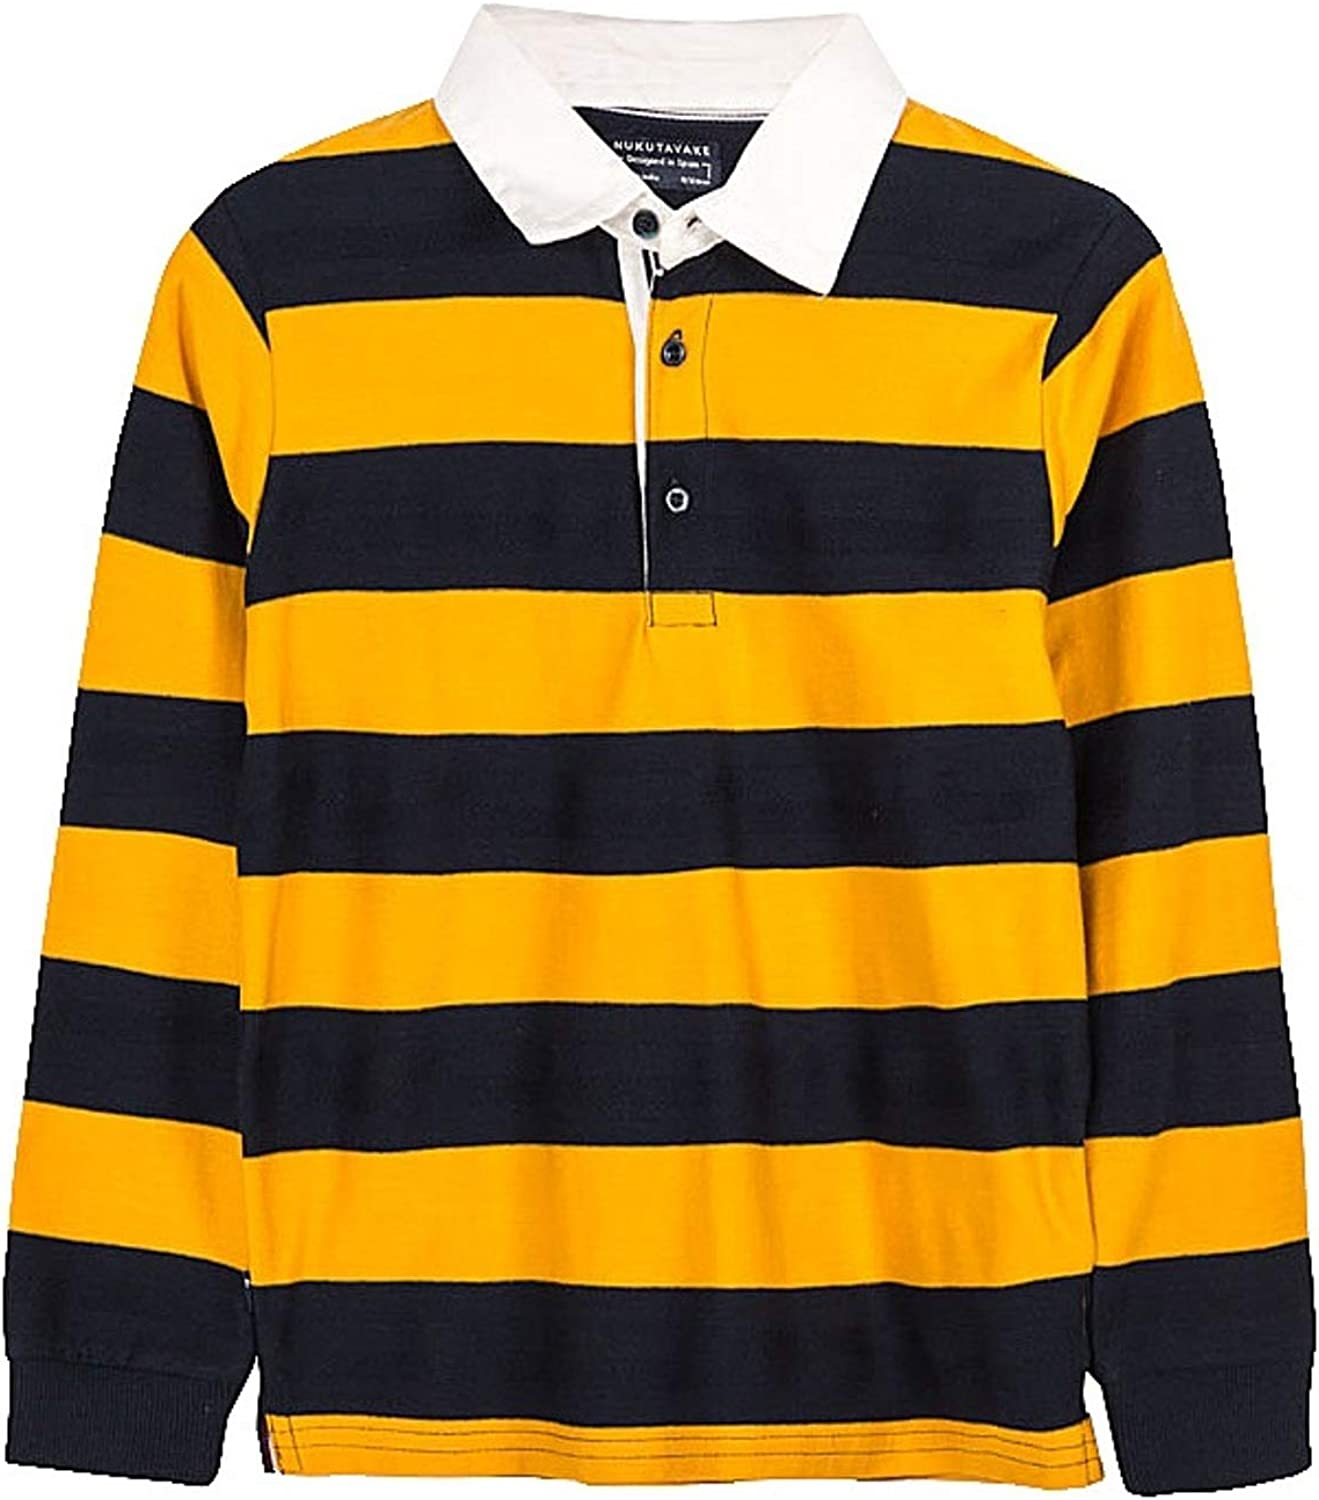 Mayoral - Striped Polo L/s for Boys - 7125, Wheat